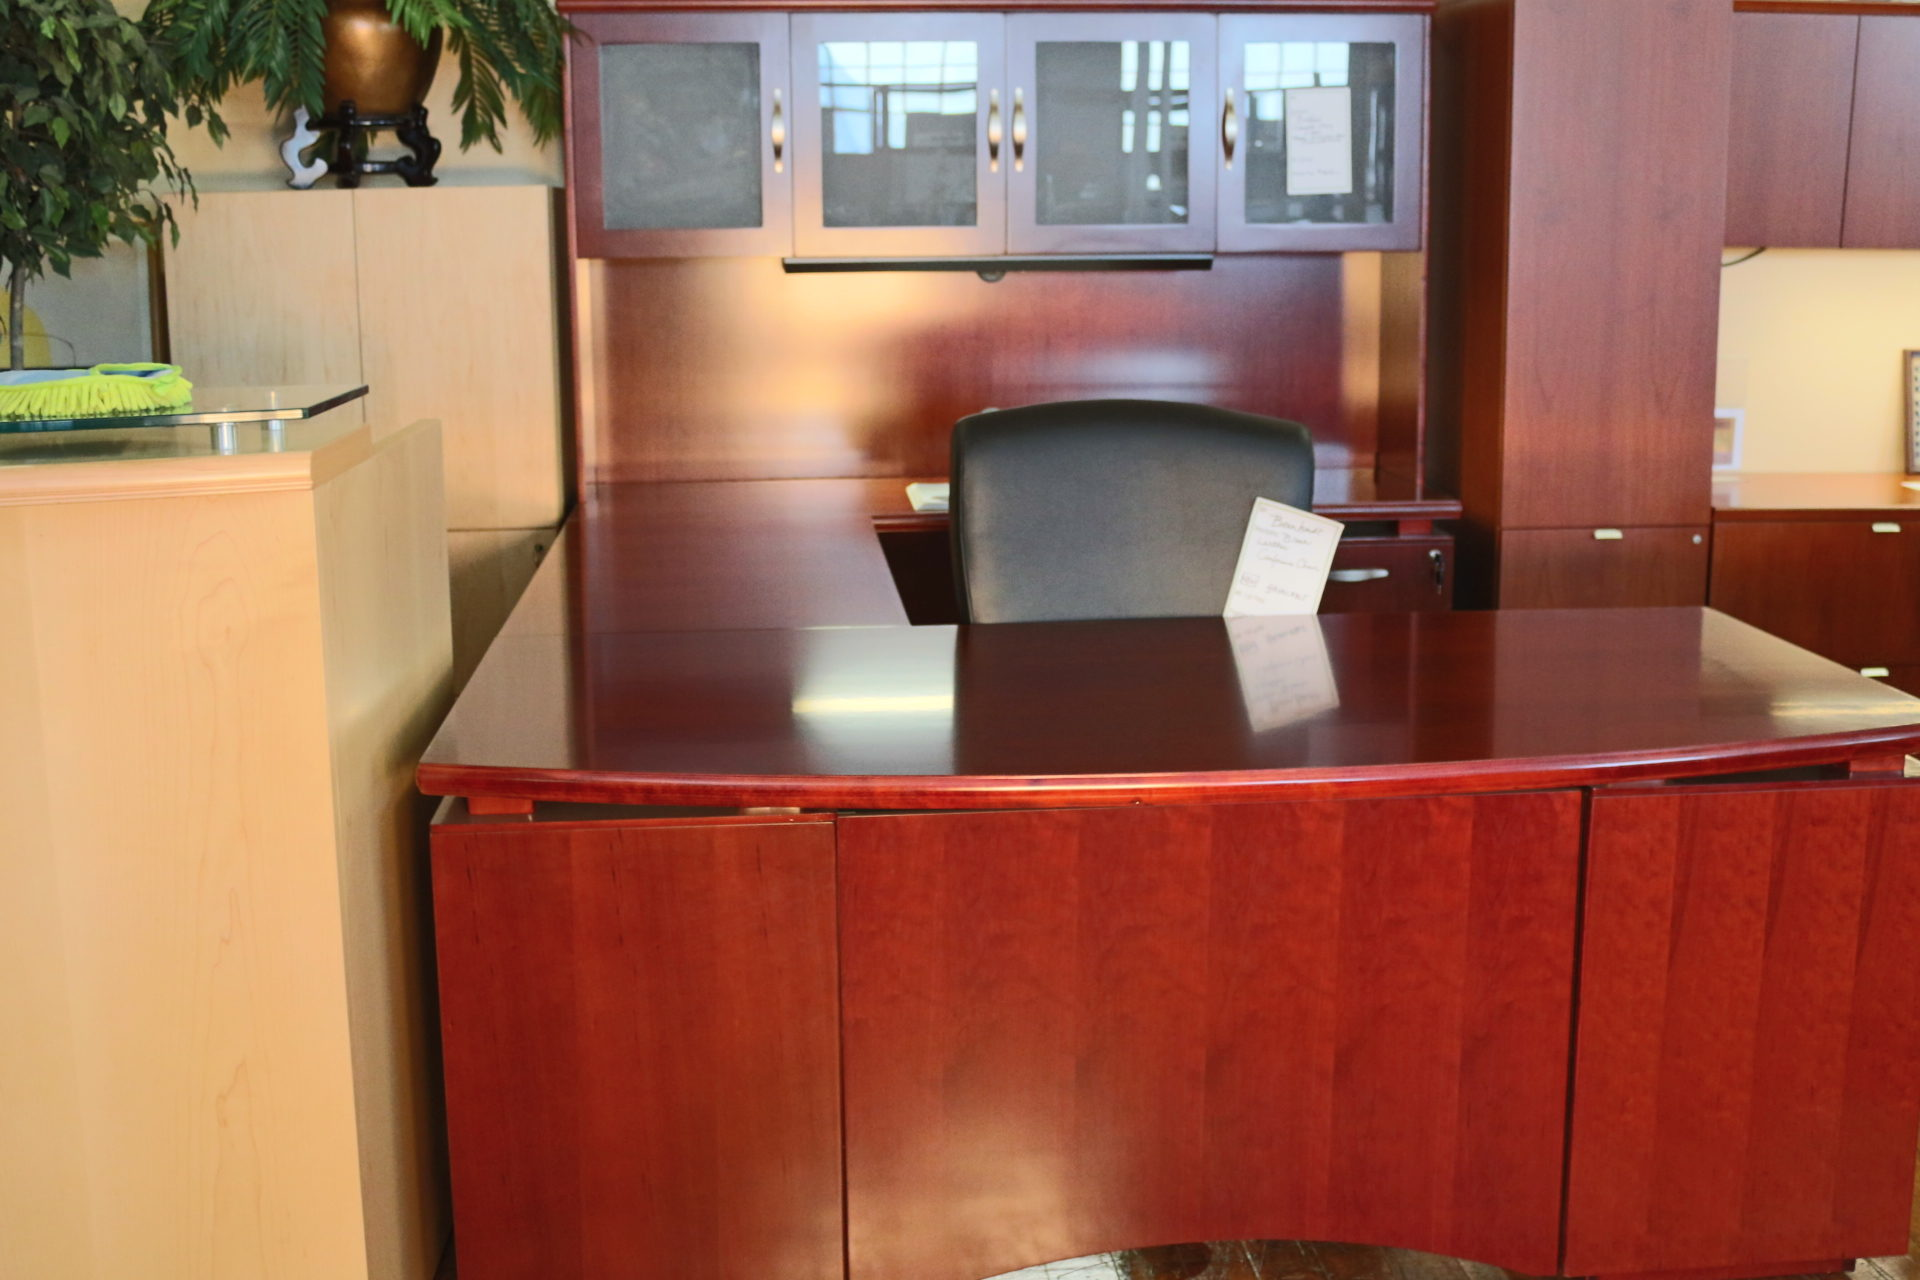 peartreeofficefurniture_peartreeofficefurniture_img_0477.jpg